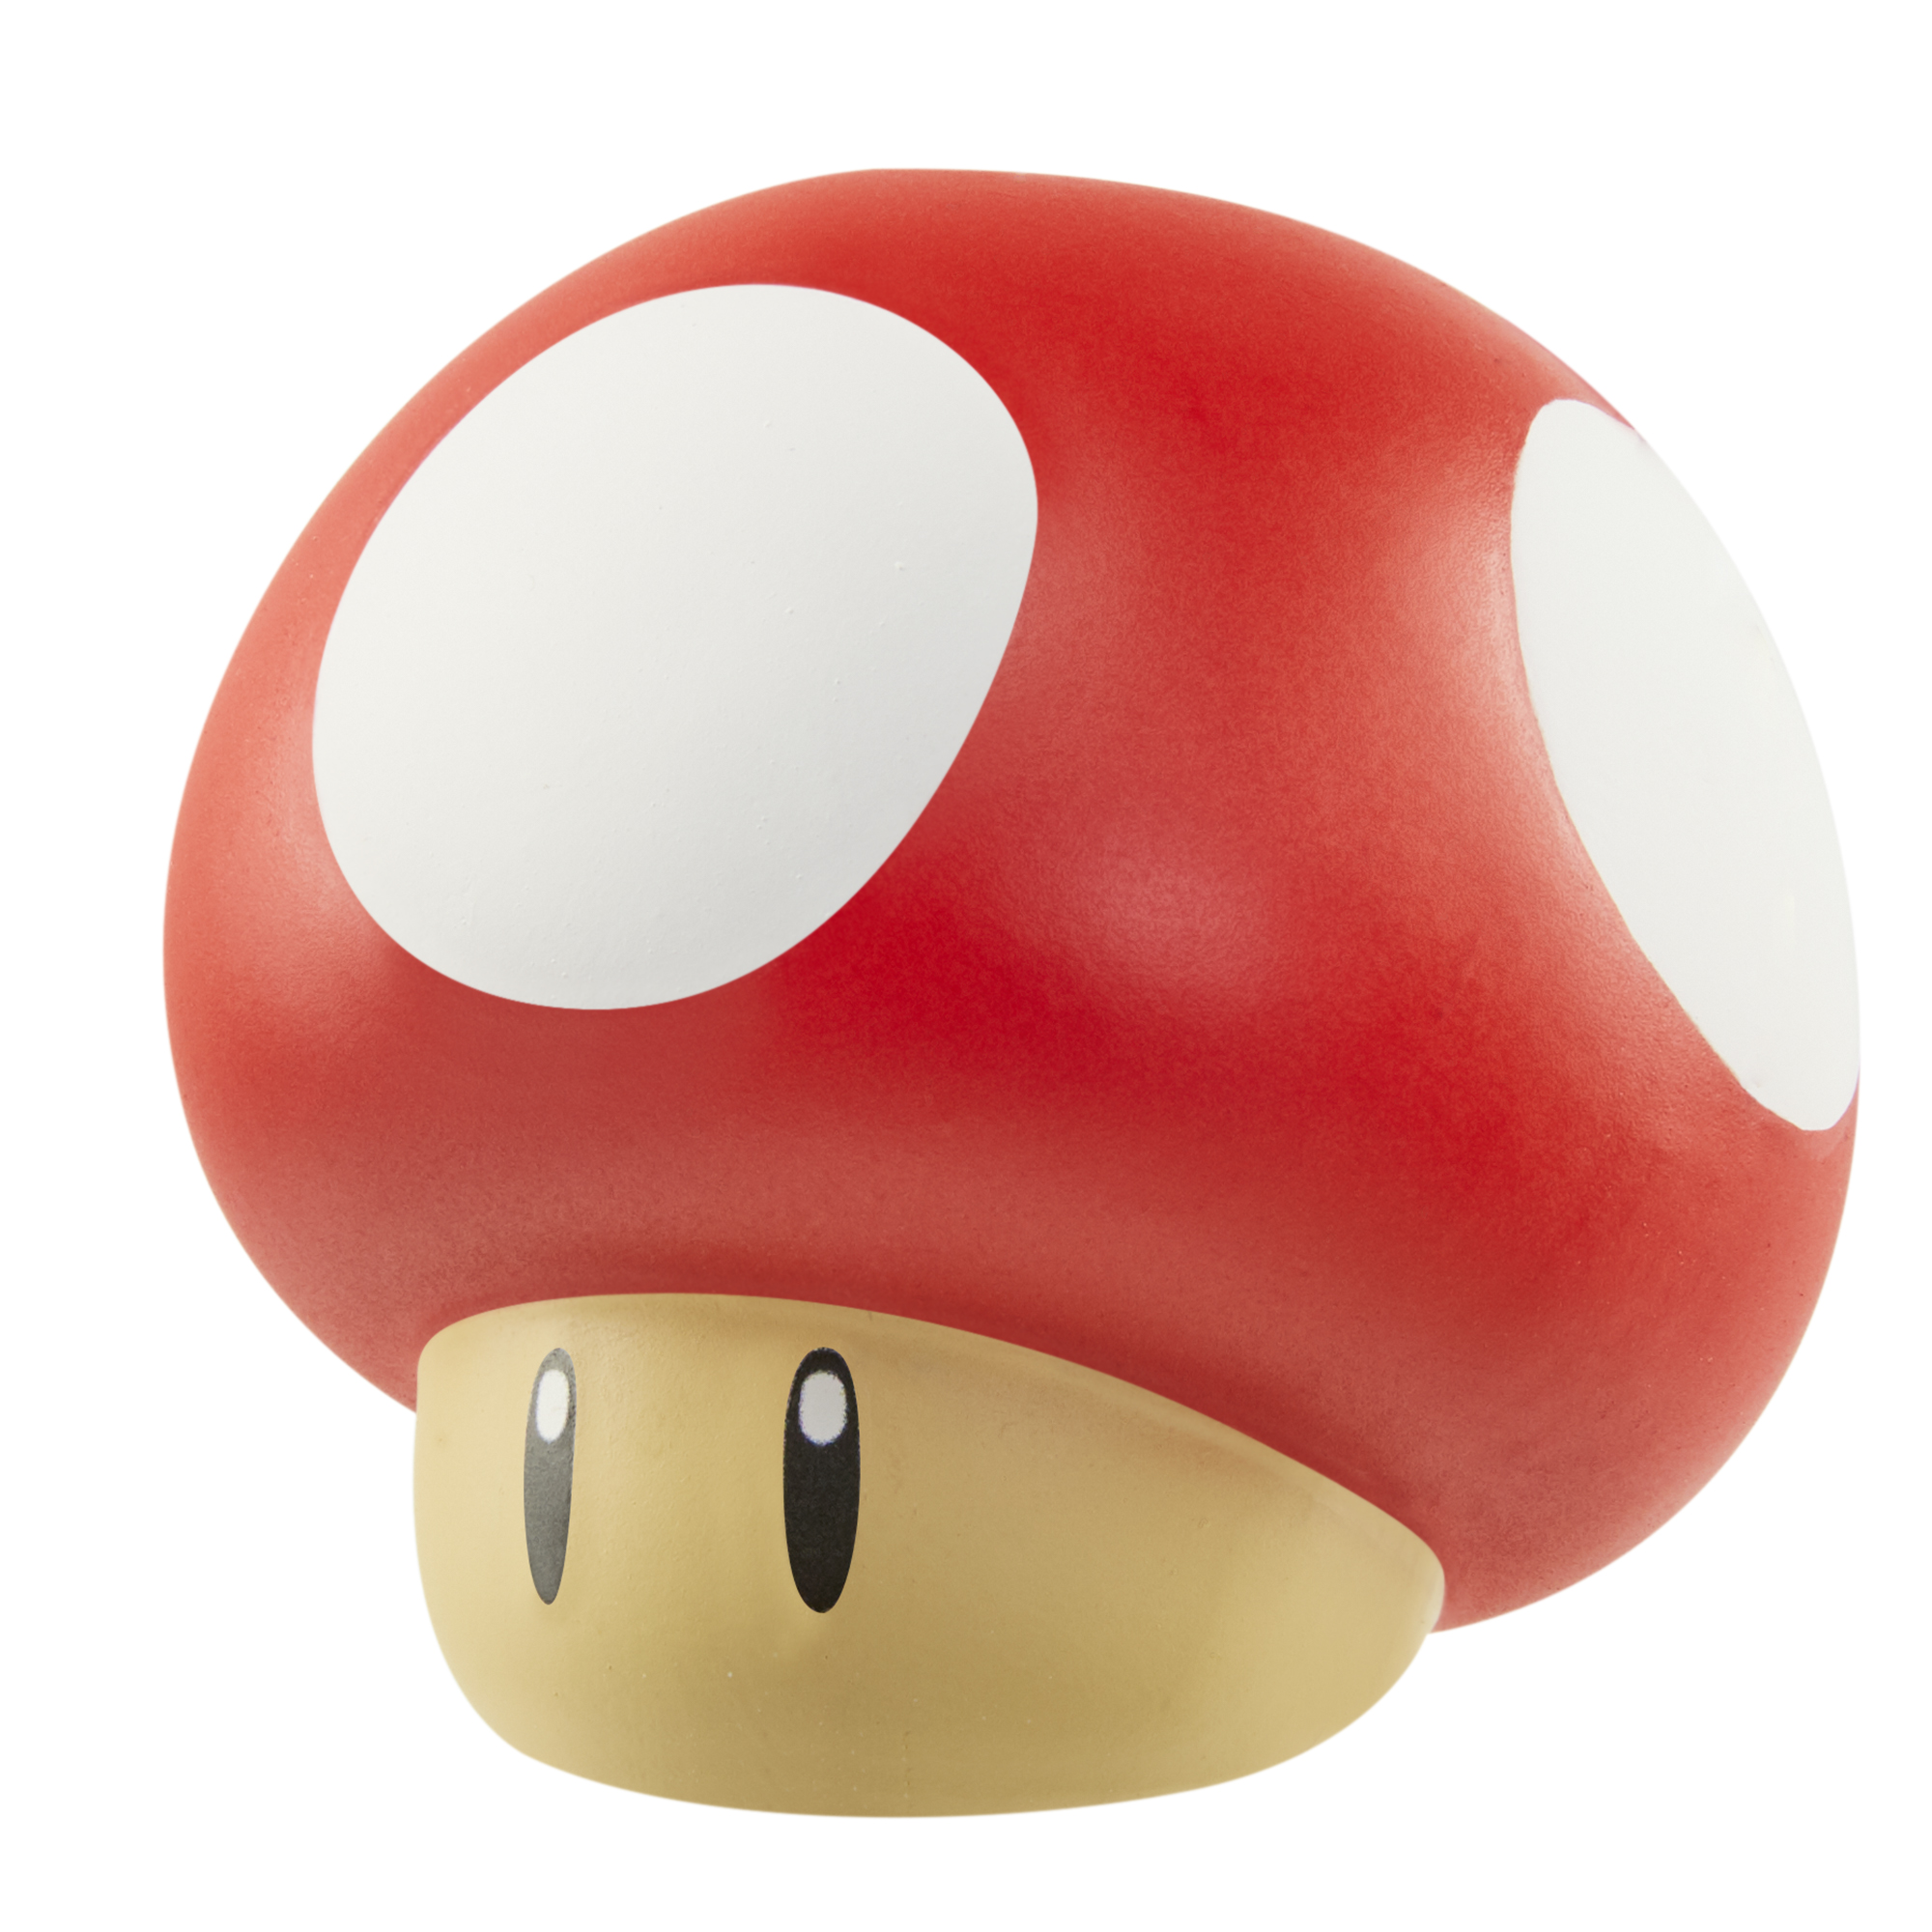 Super Mario Squish Dee-Lish Red Mushroom (Power Up)